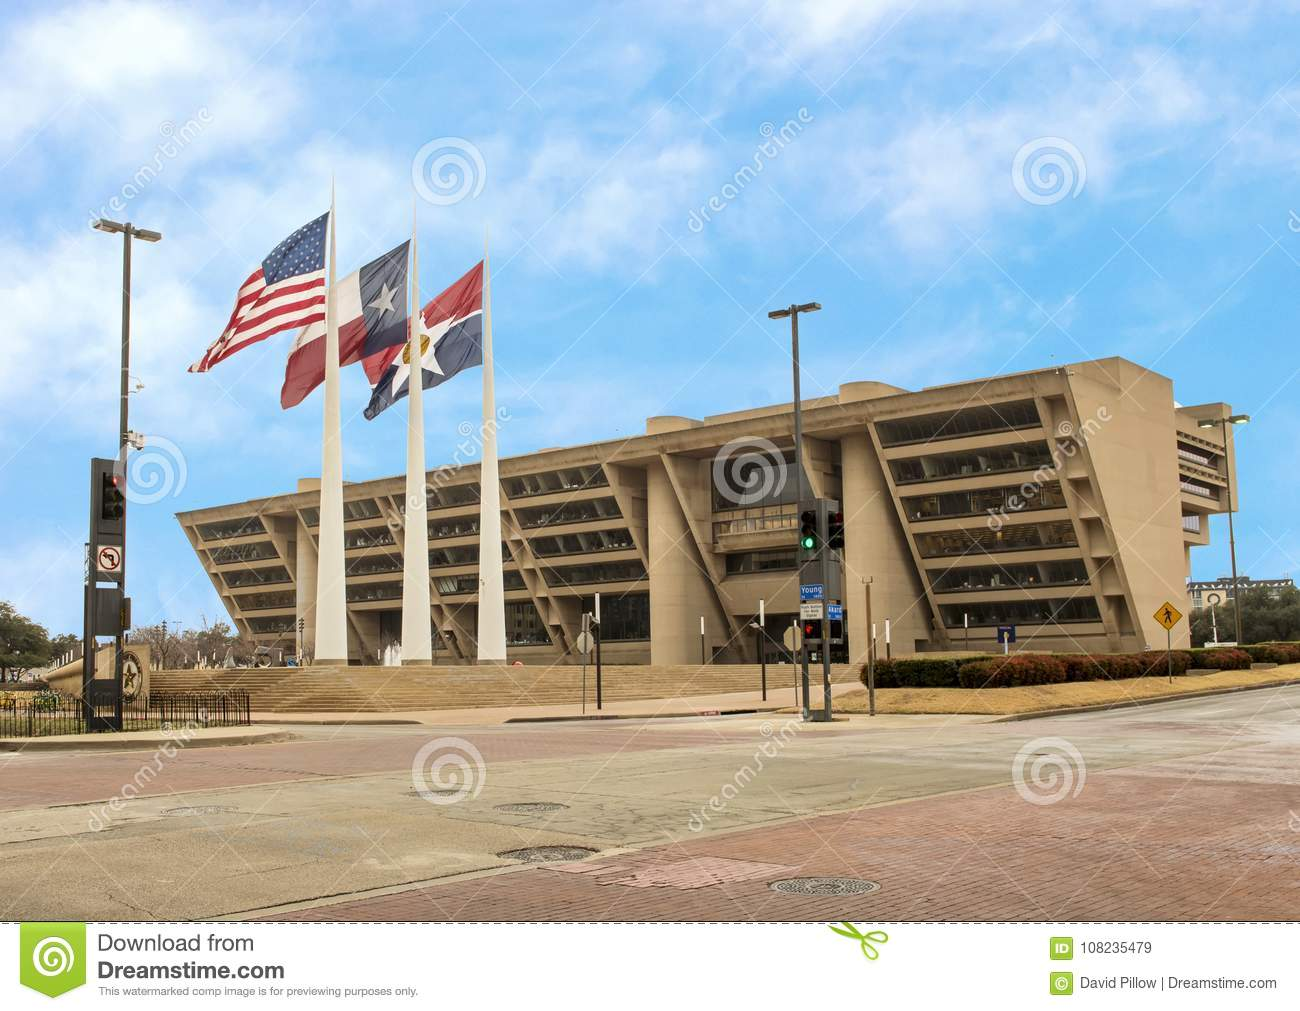 Dallas City Hall com americano, Texas, e Dallas Flags na parte dianteira